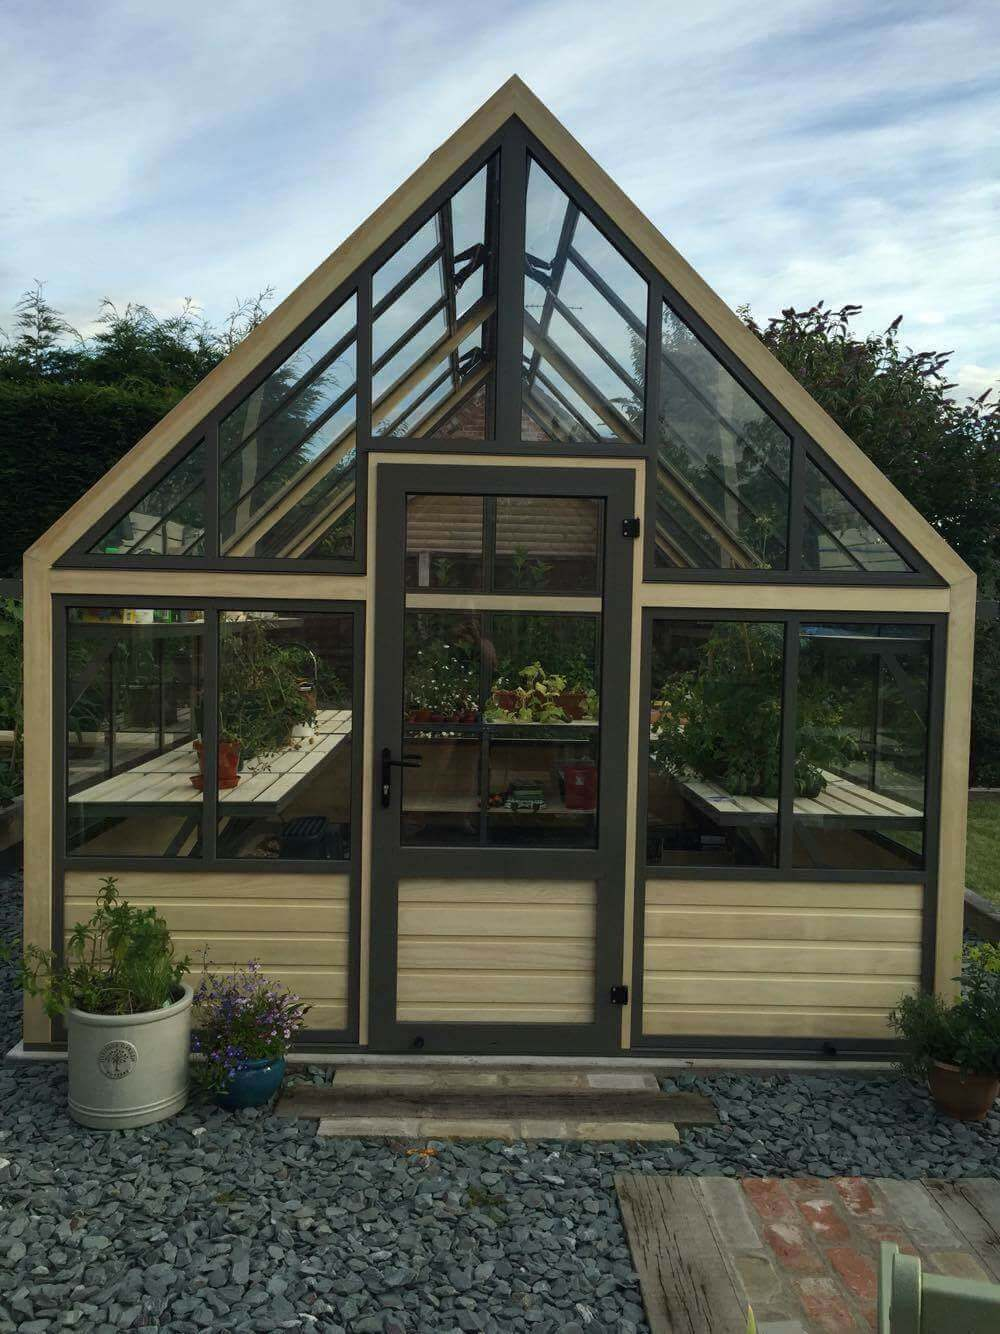 10 foot wide wooden greenhouse